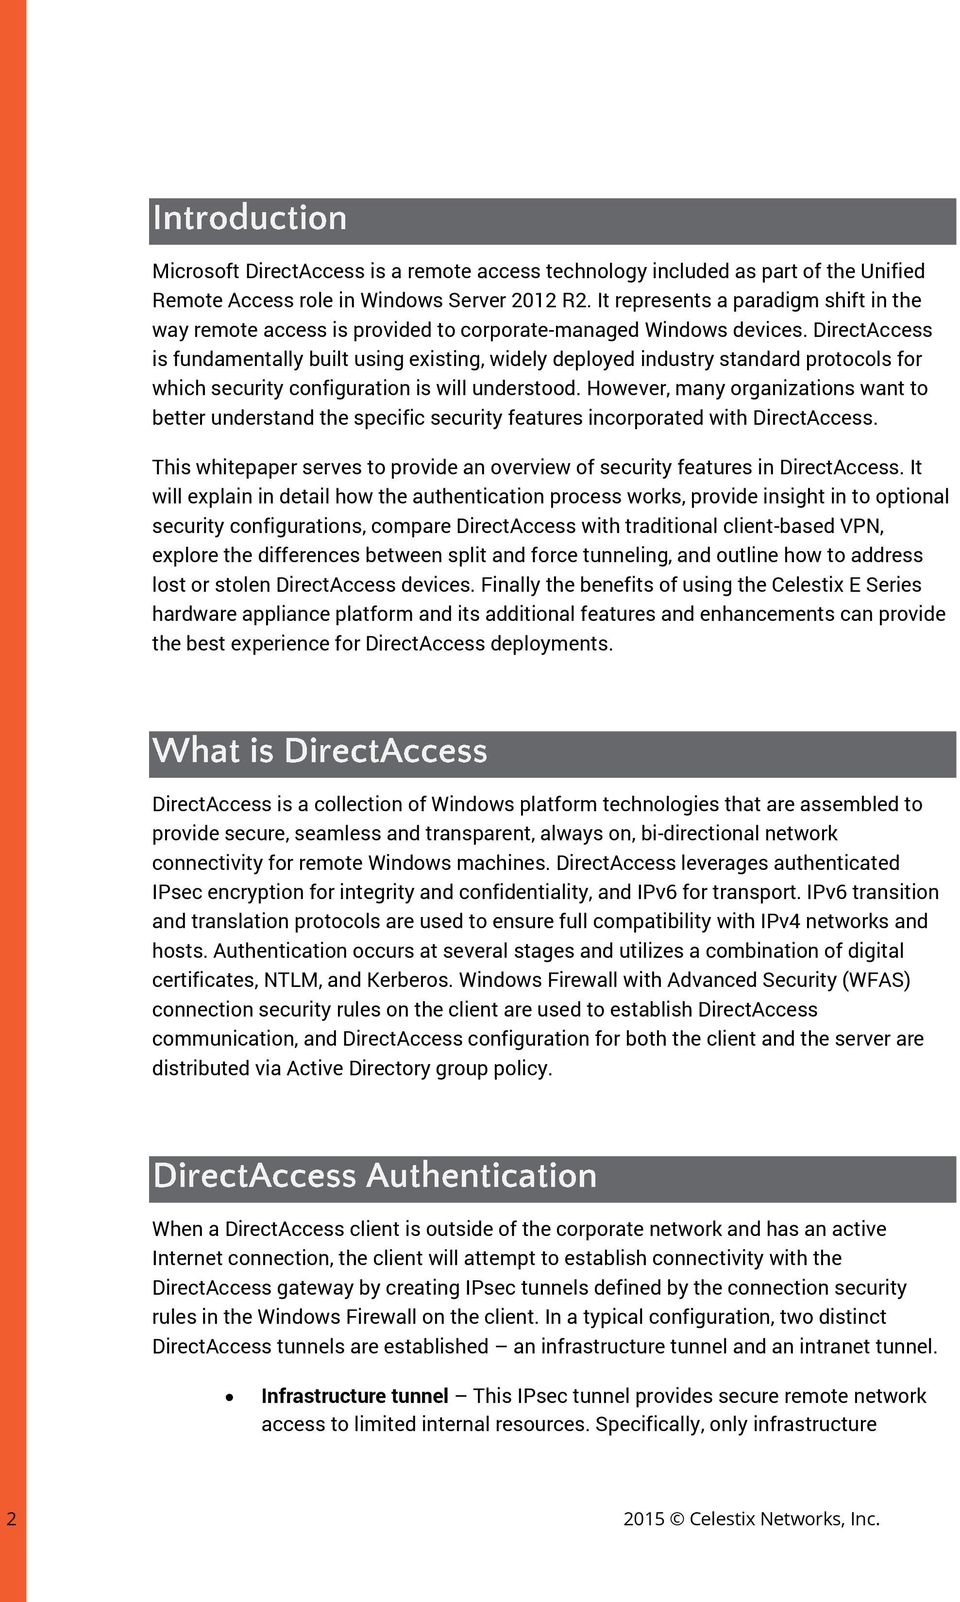 DirectAccess is fundamentally built using existing, widely deployed industry standard protocols for which security configuration is will understood.